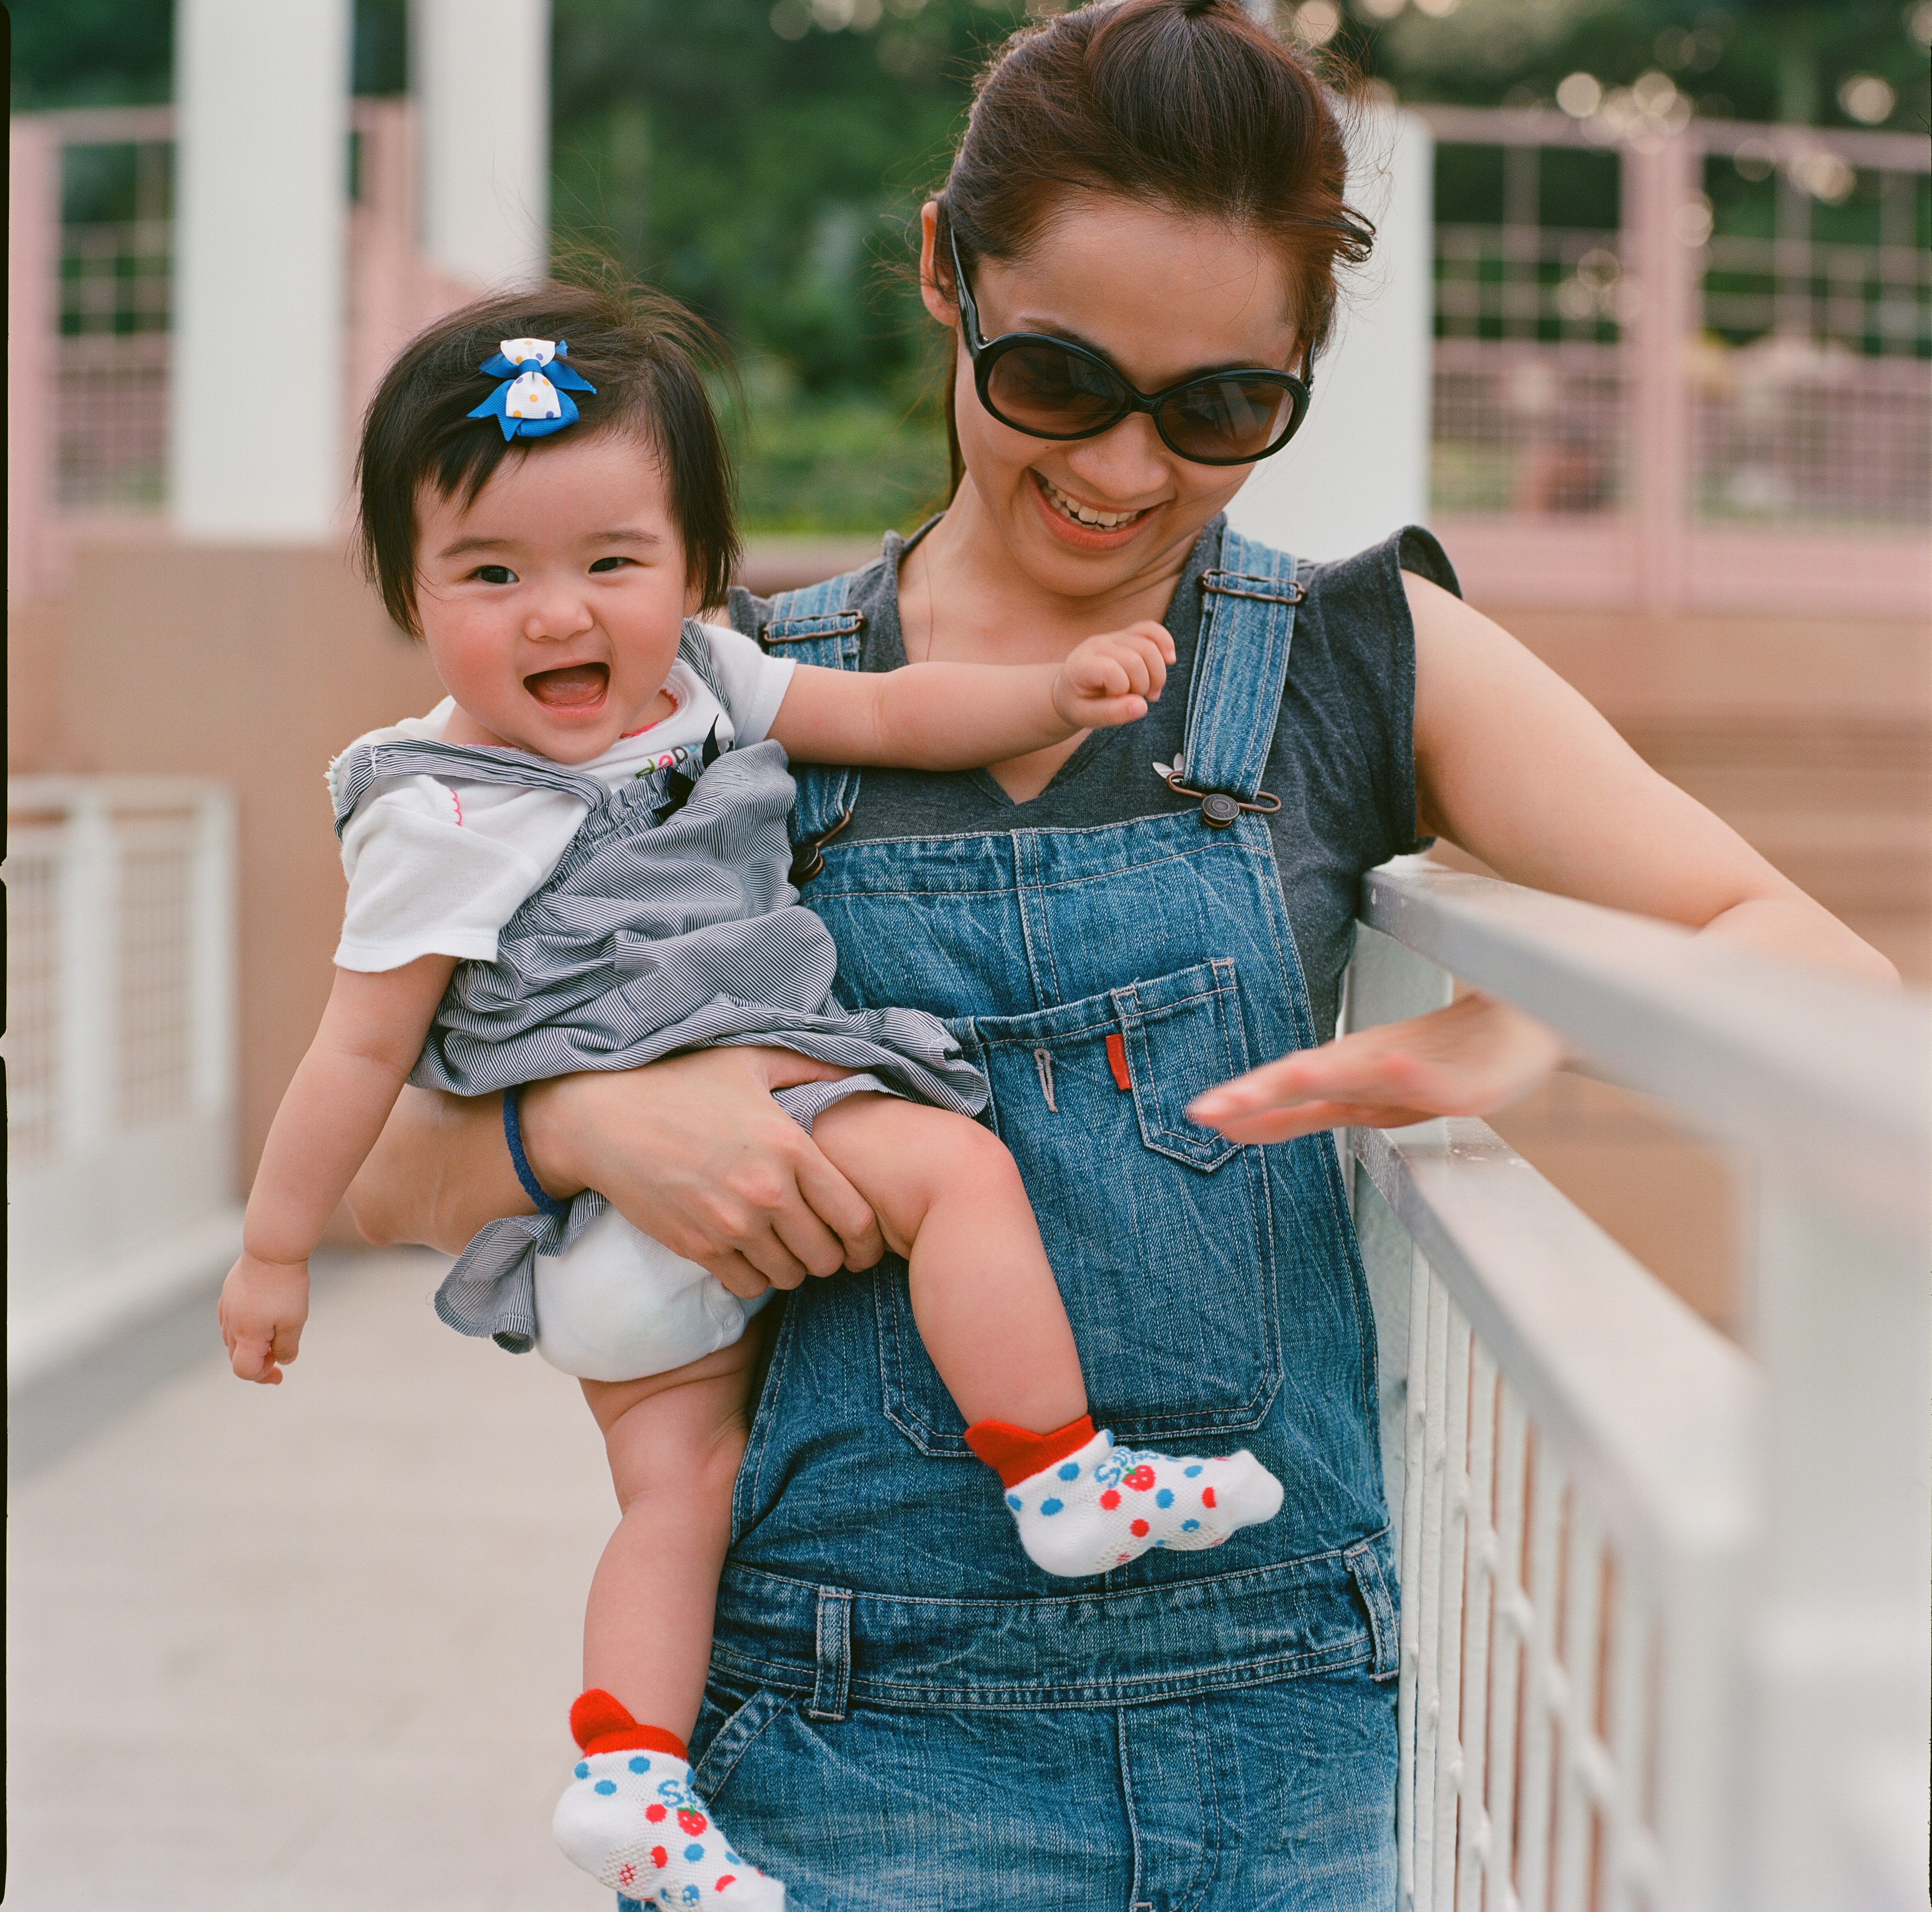 Mom in Overalls